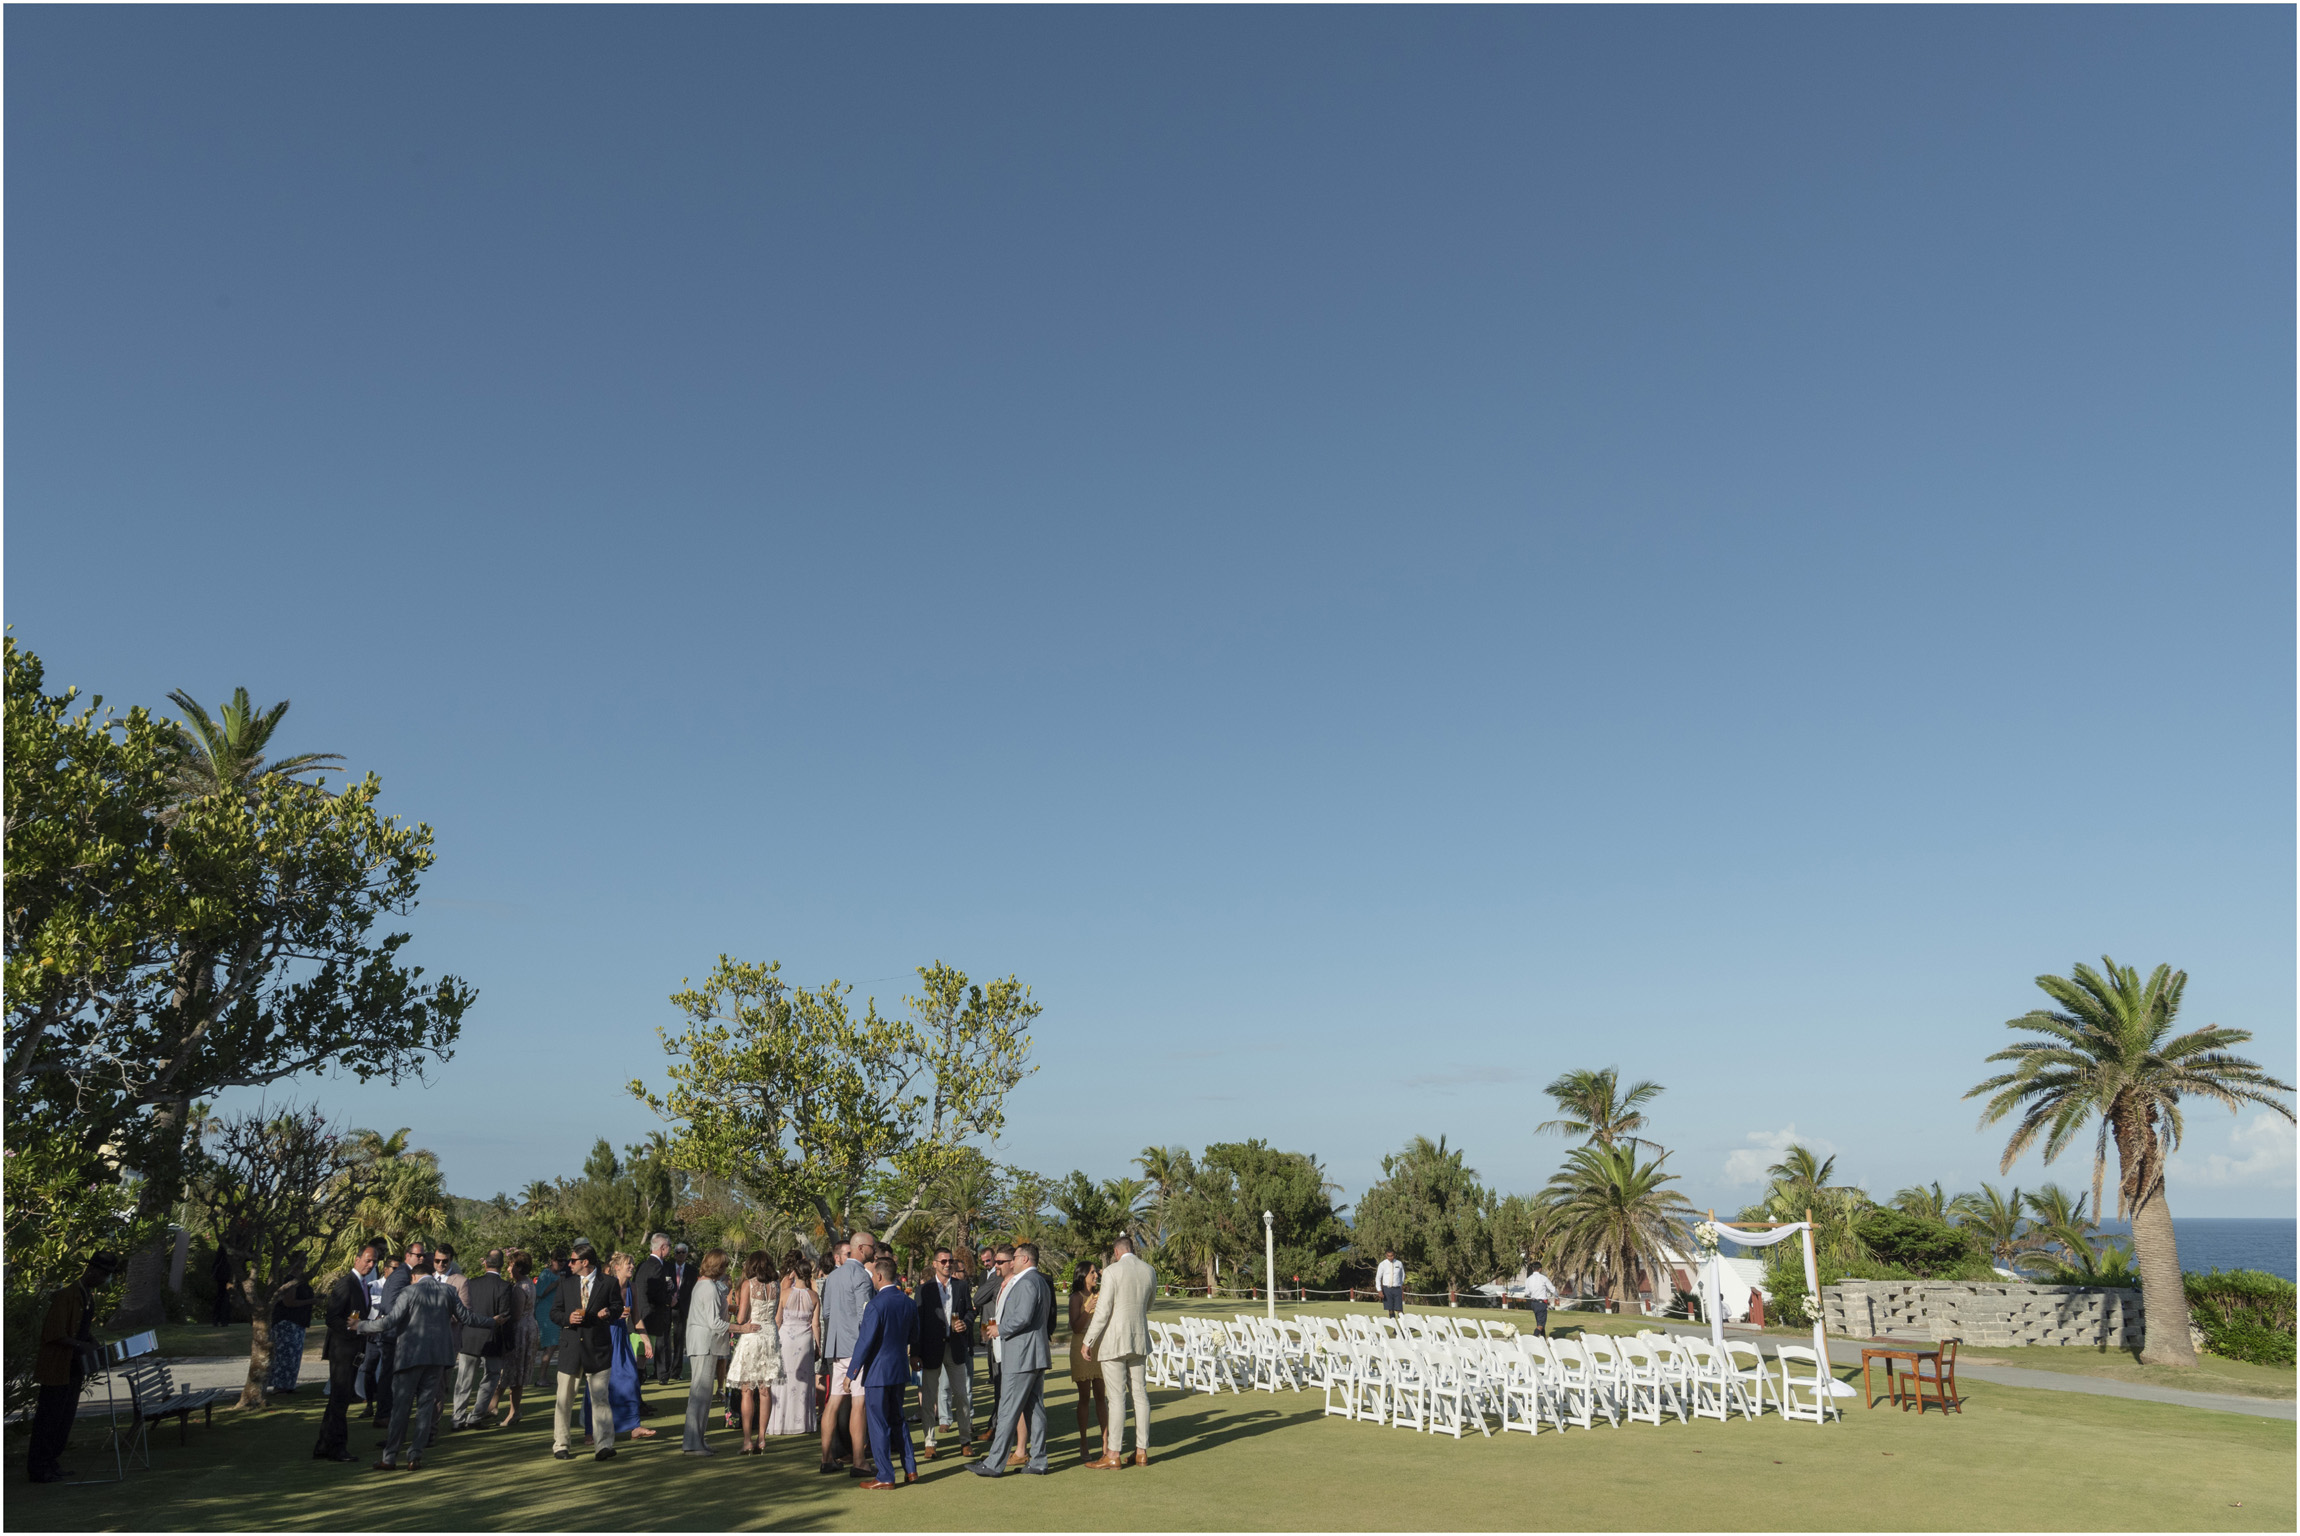 ©FianderFoto_Catherine_Kenny_Coral Beach Wedding_172.jpg